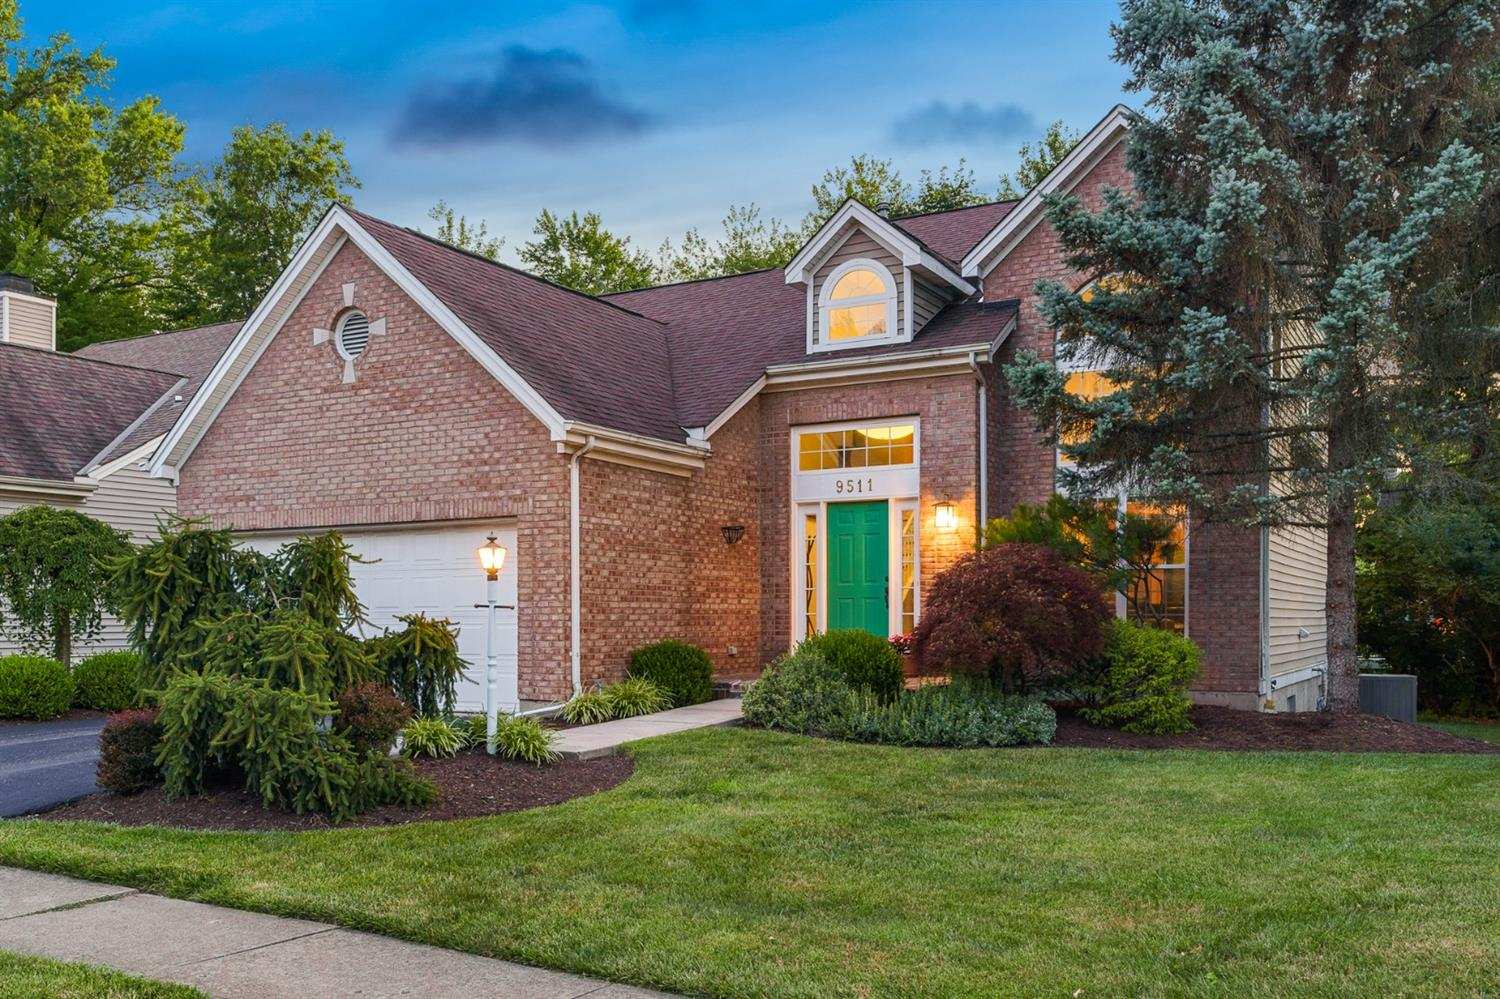 Property for sale at 9511 Carriage Run Circle, Loveland,  Ohio 45140